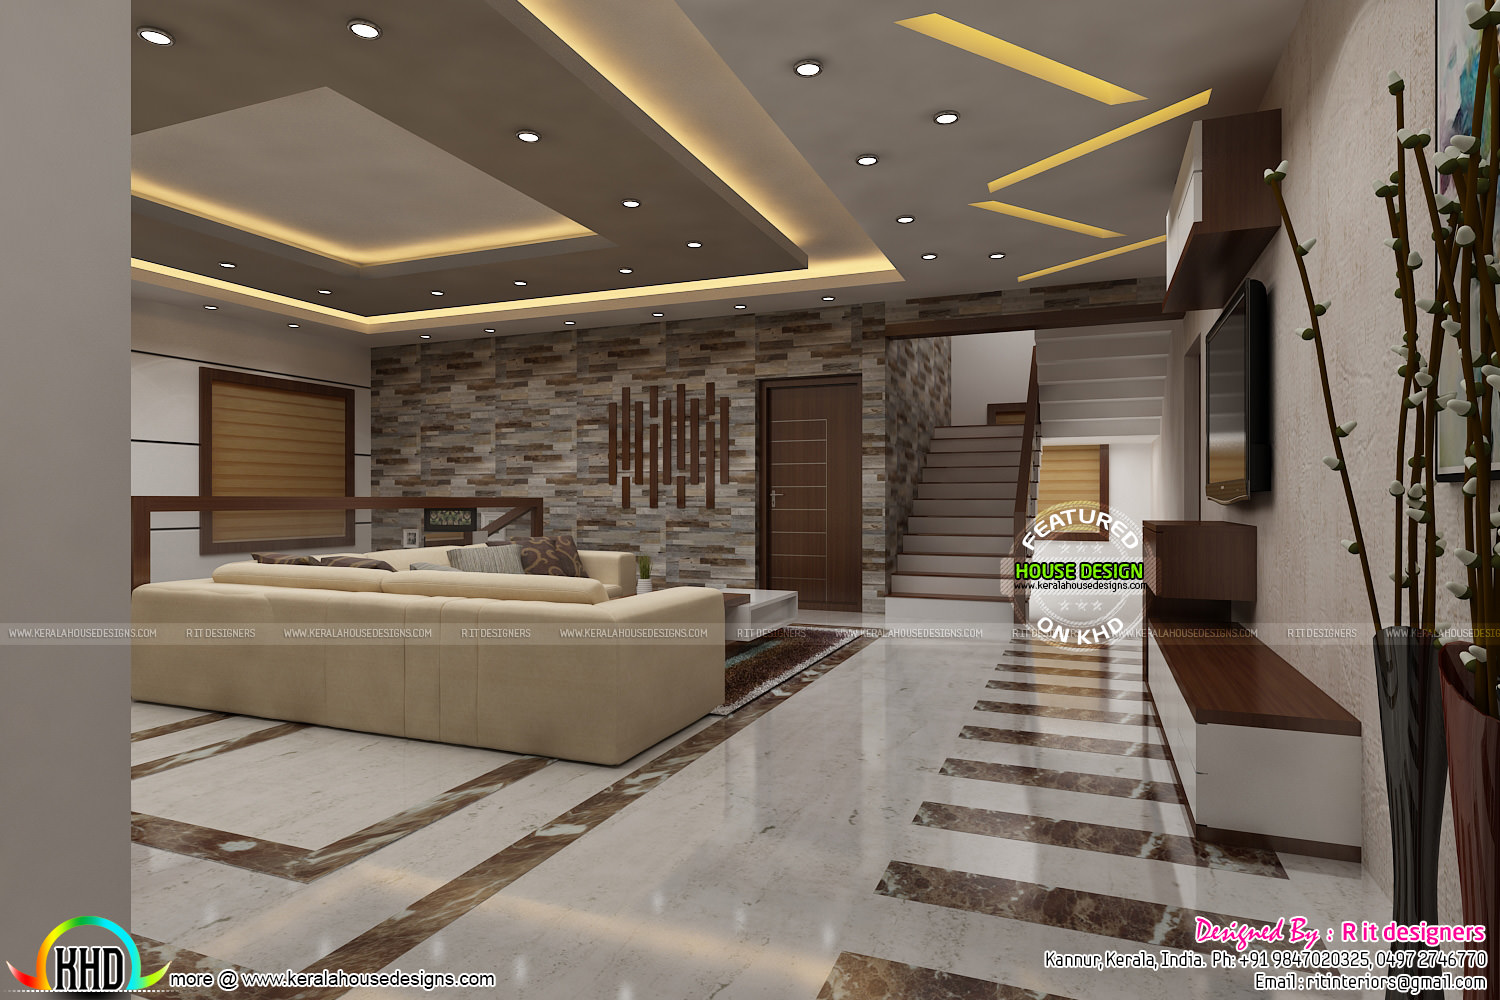 Most modern Kerala living room interior - Kerala home design and